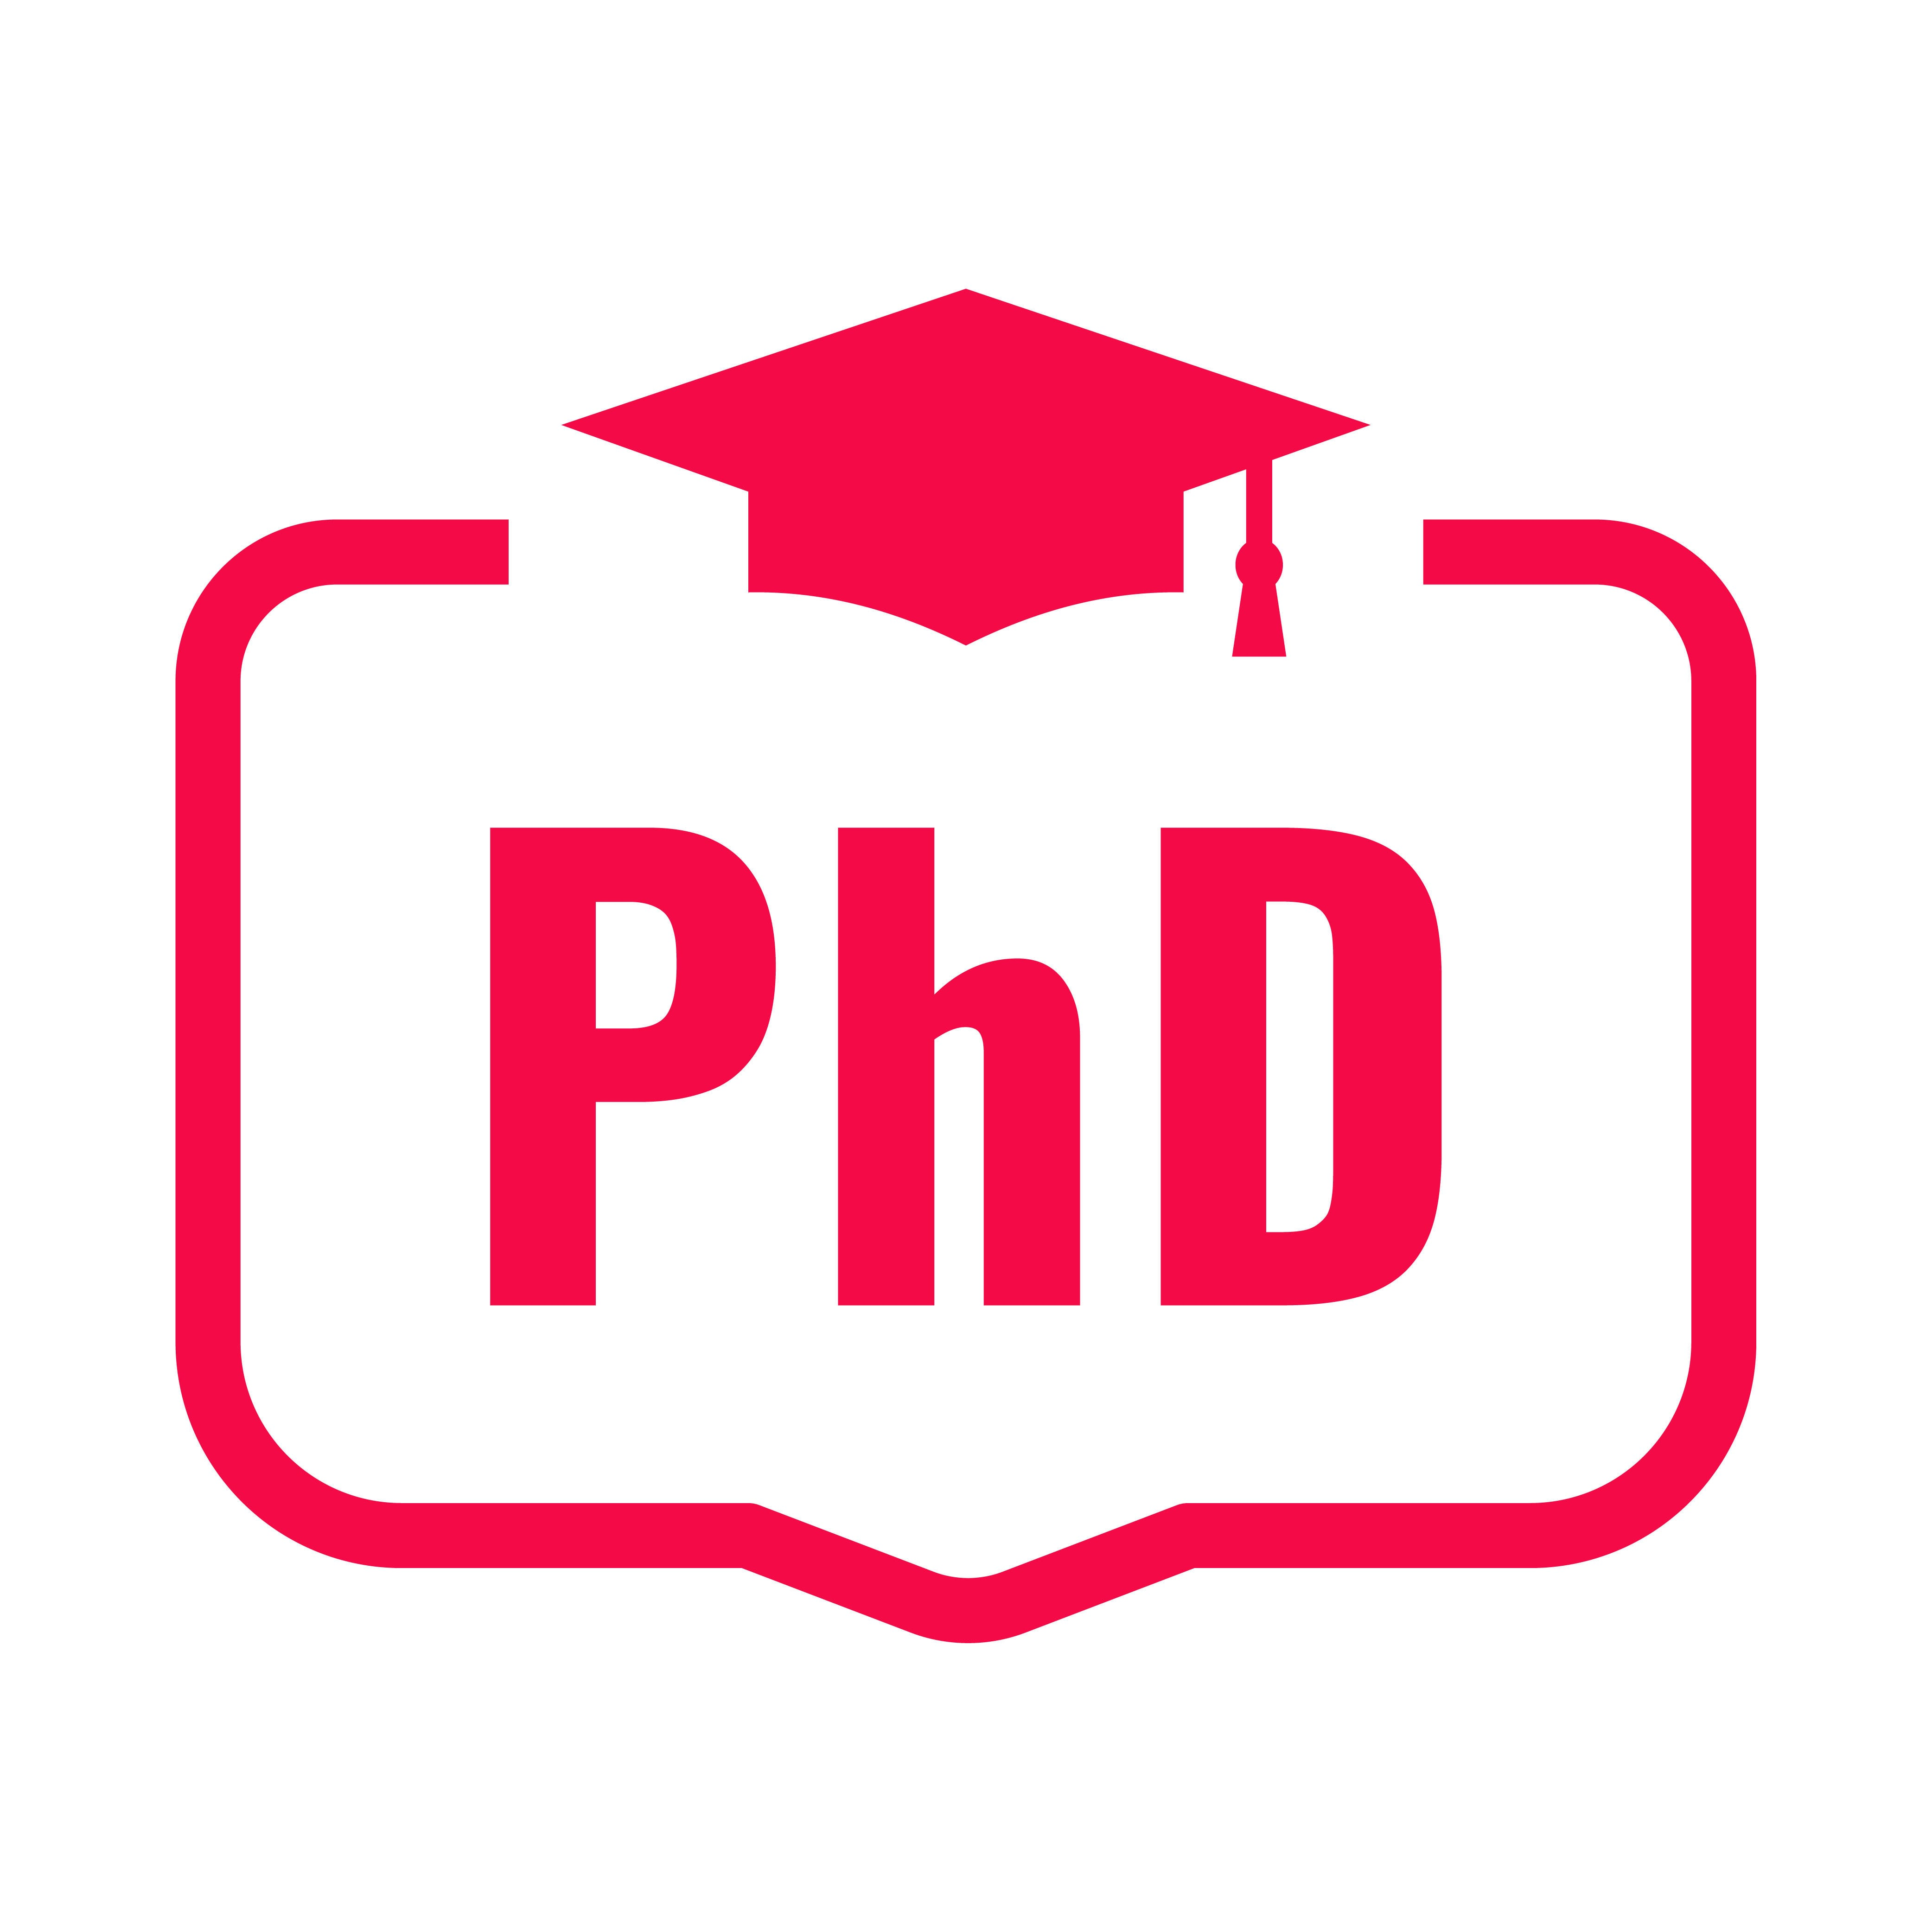 About phd degree